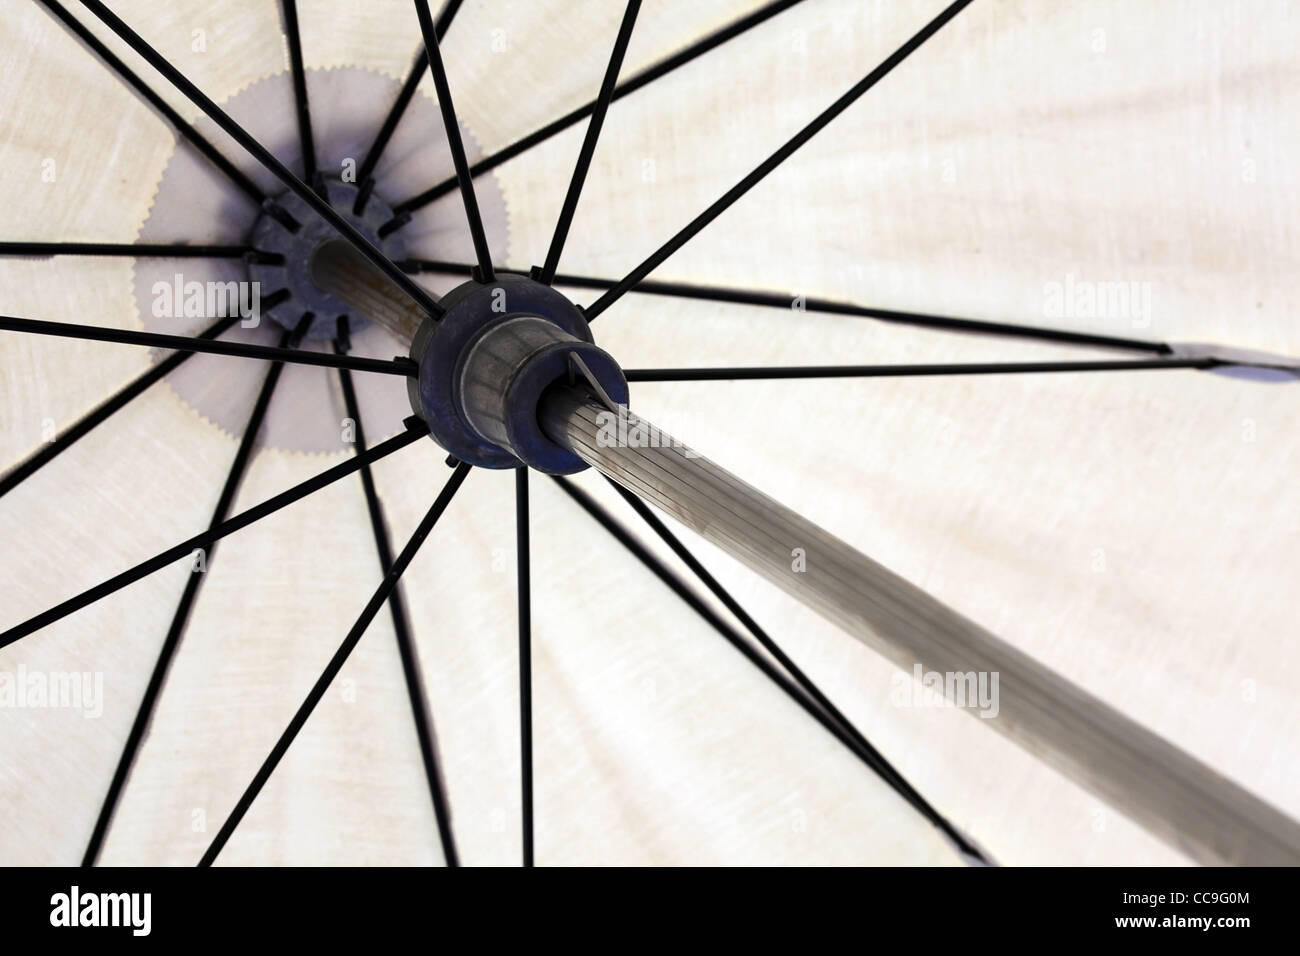 À l'intérieur d'un parasol. Close-up. Photo Stock